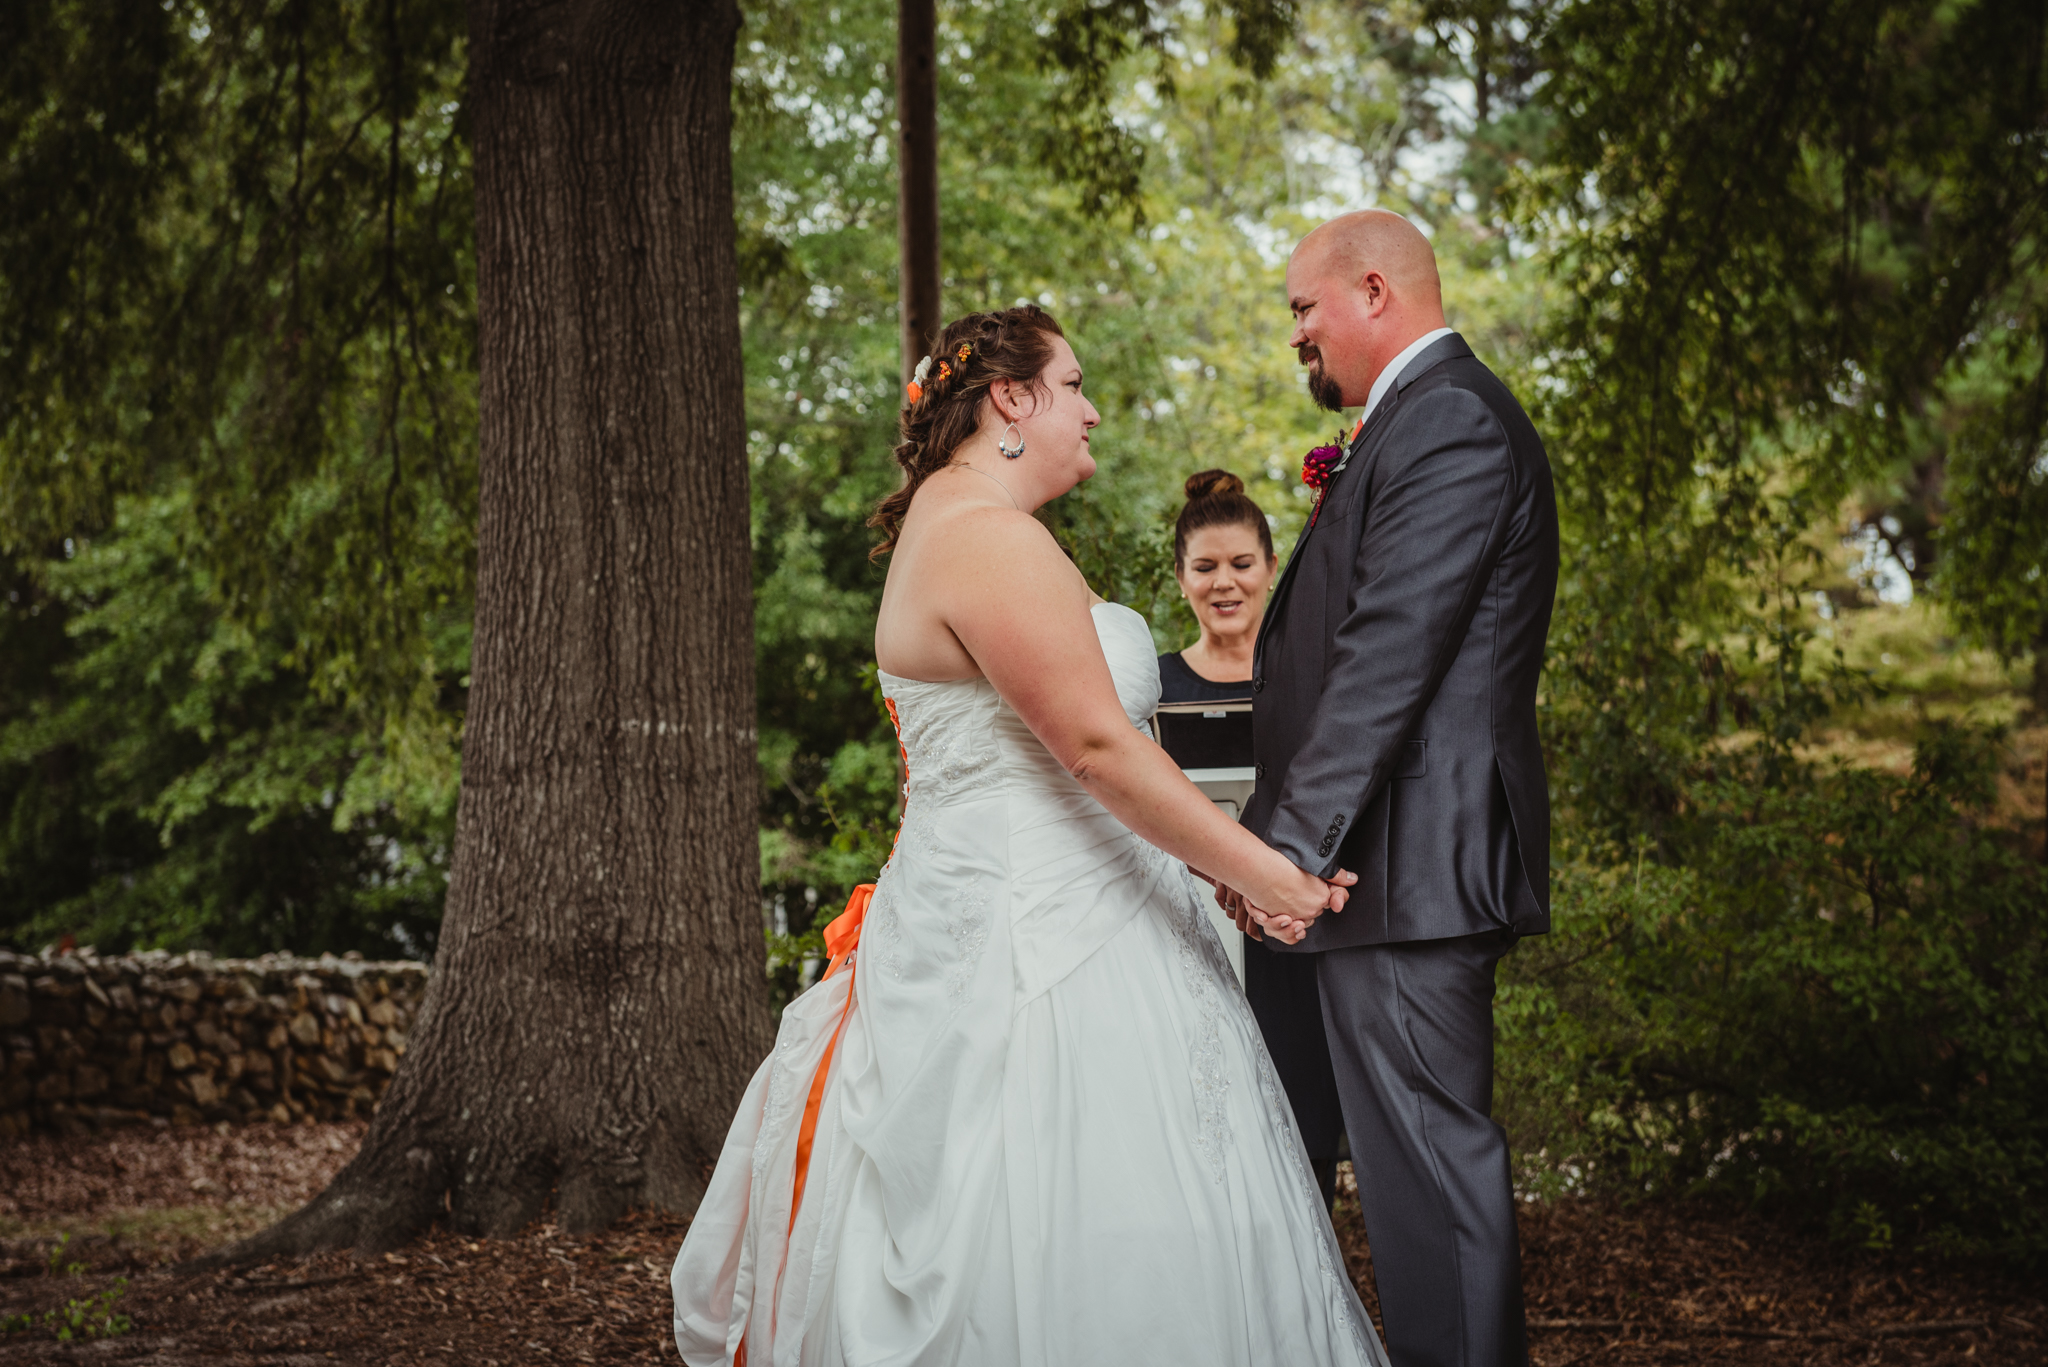 raleigh-wedding-ceremony-vows-cd-1.jpg